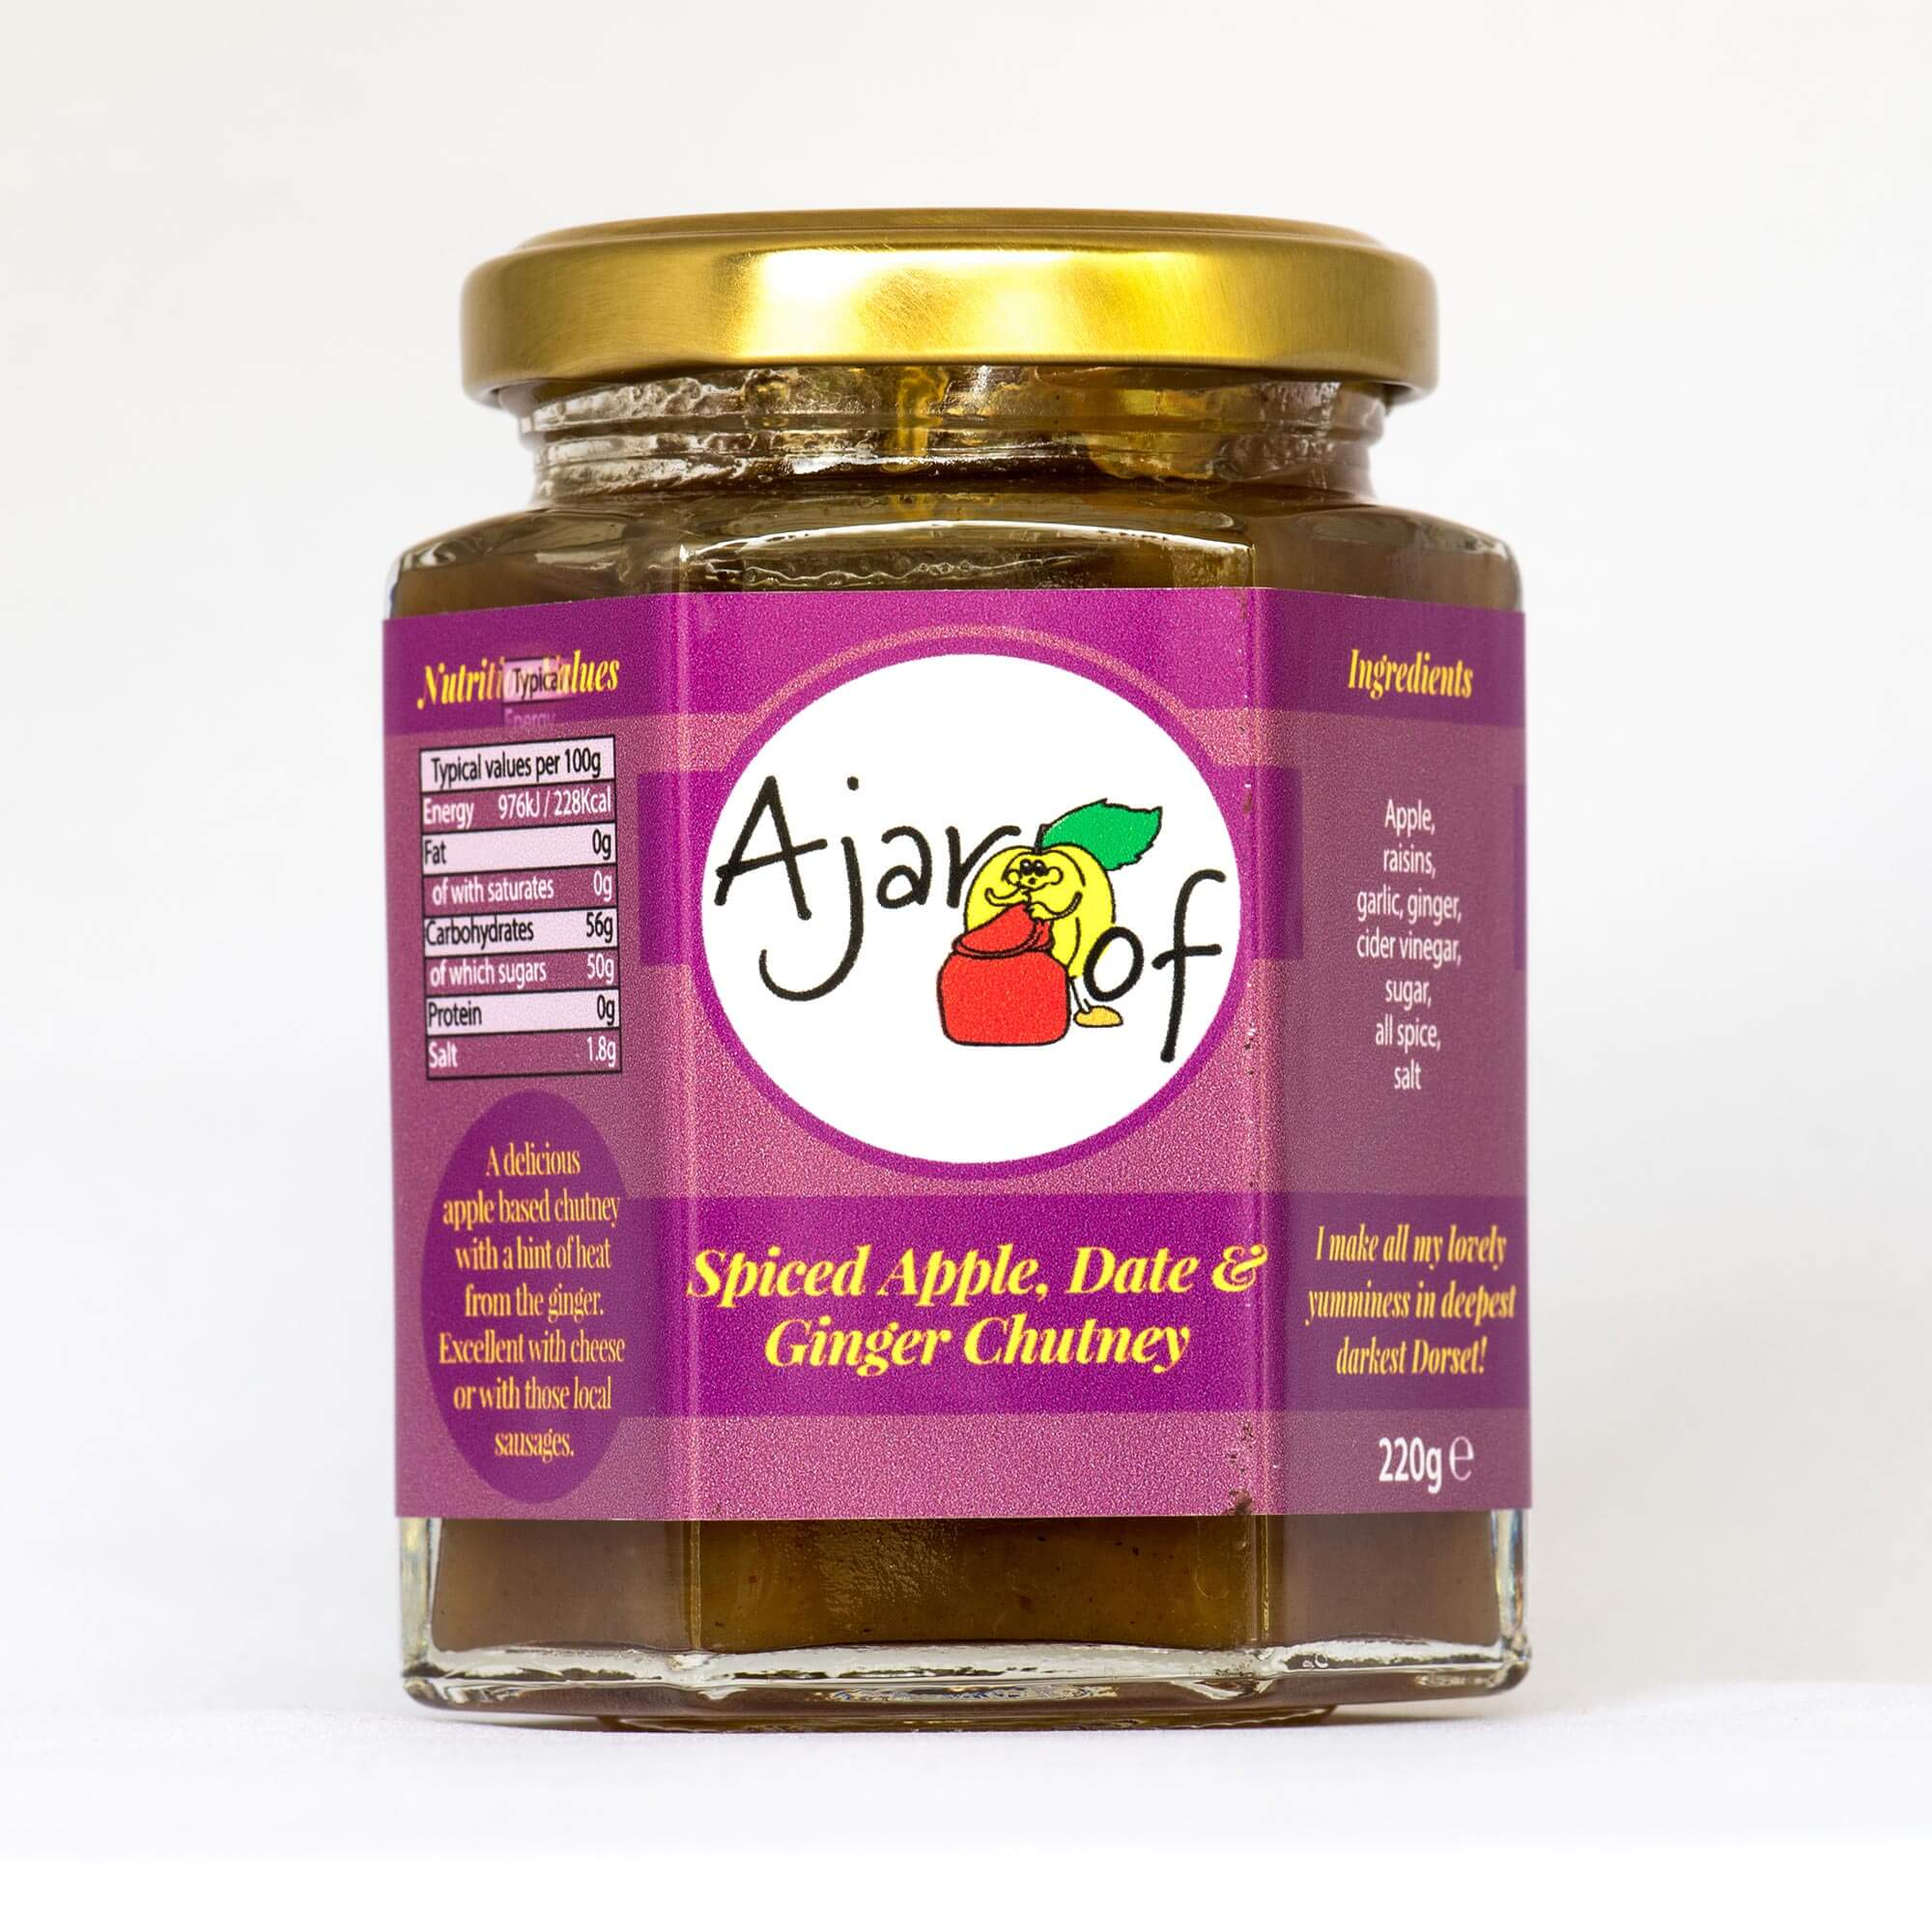 spiced-apple-date-and-ginger-chutney